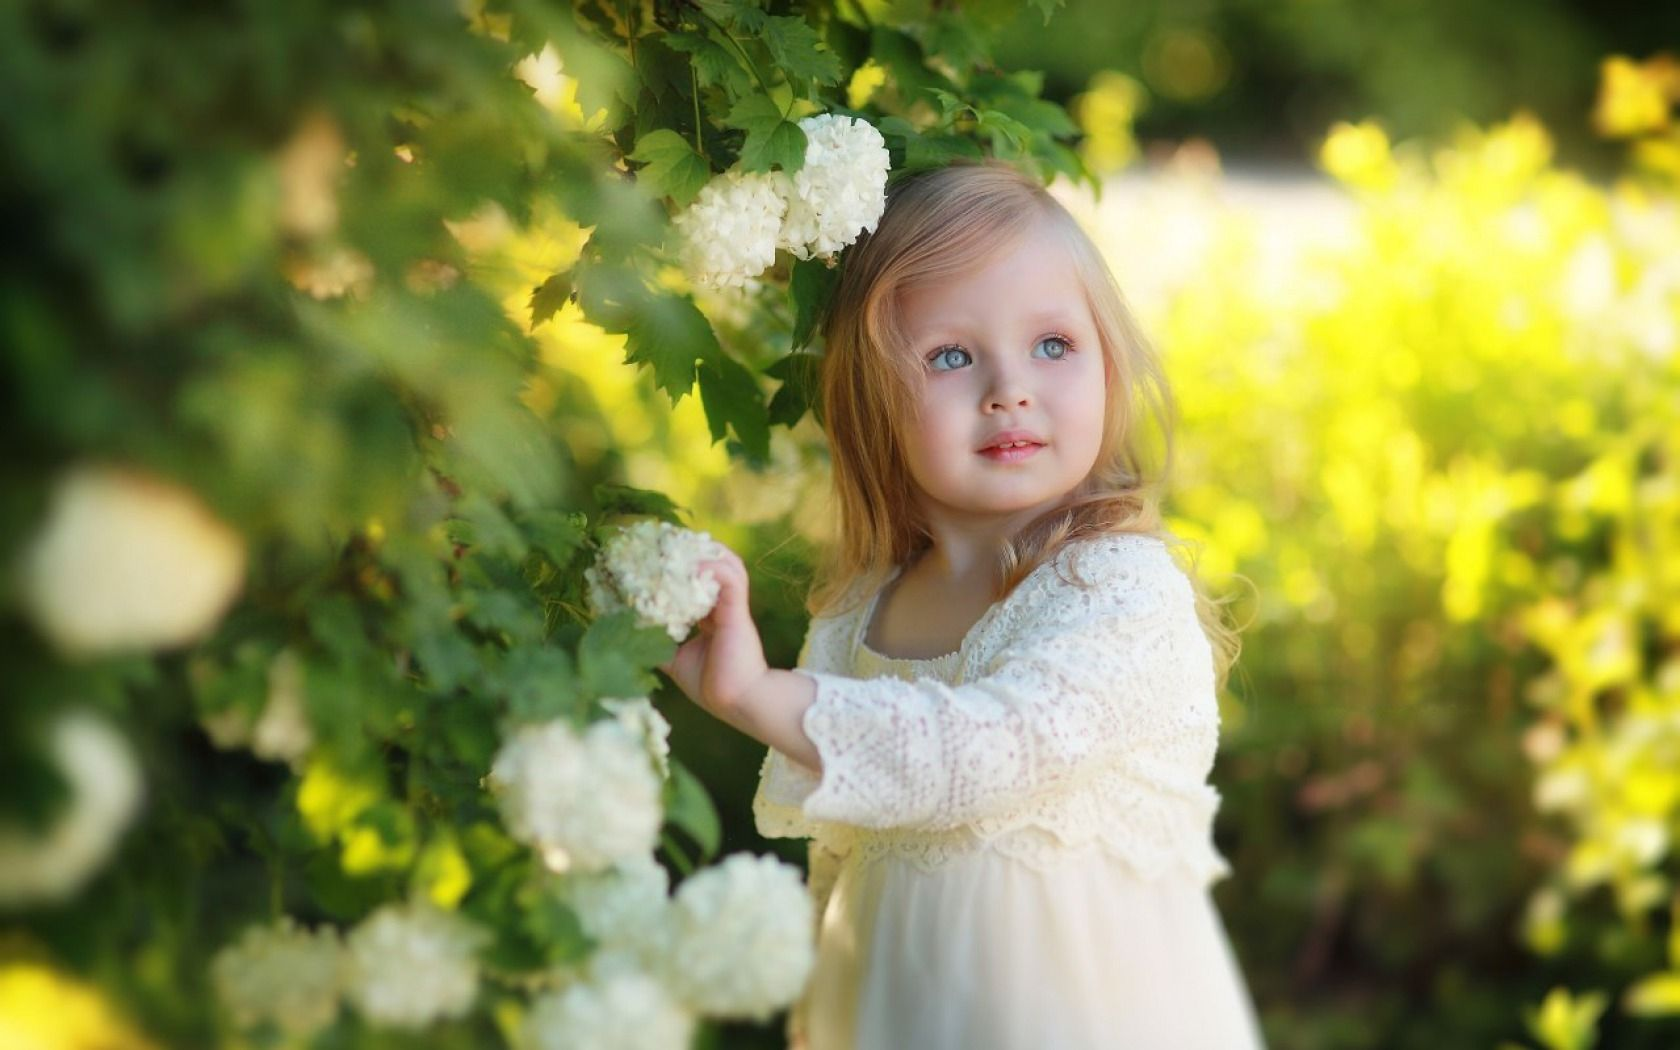 cute pictures of little girls - : yahoo image search results | cute